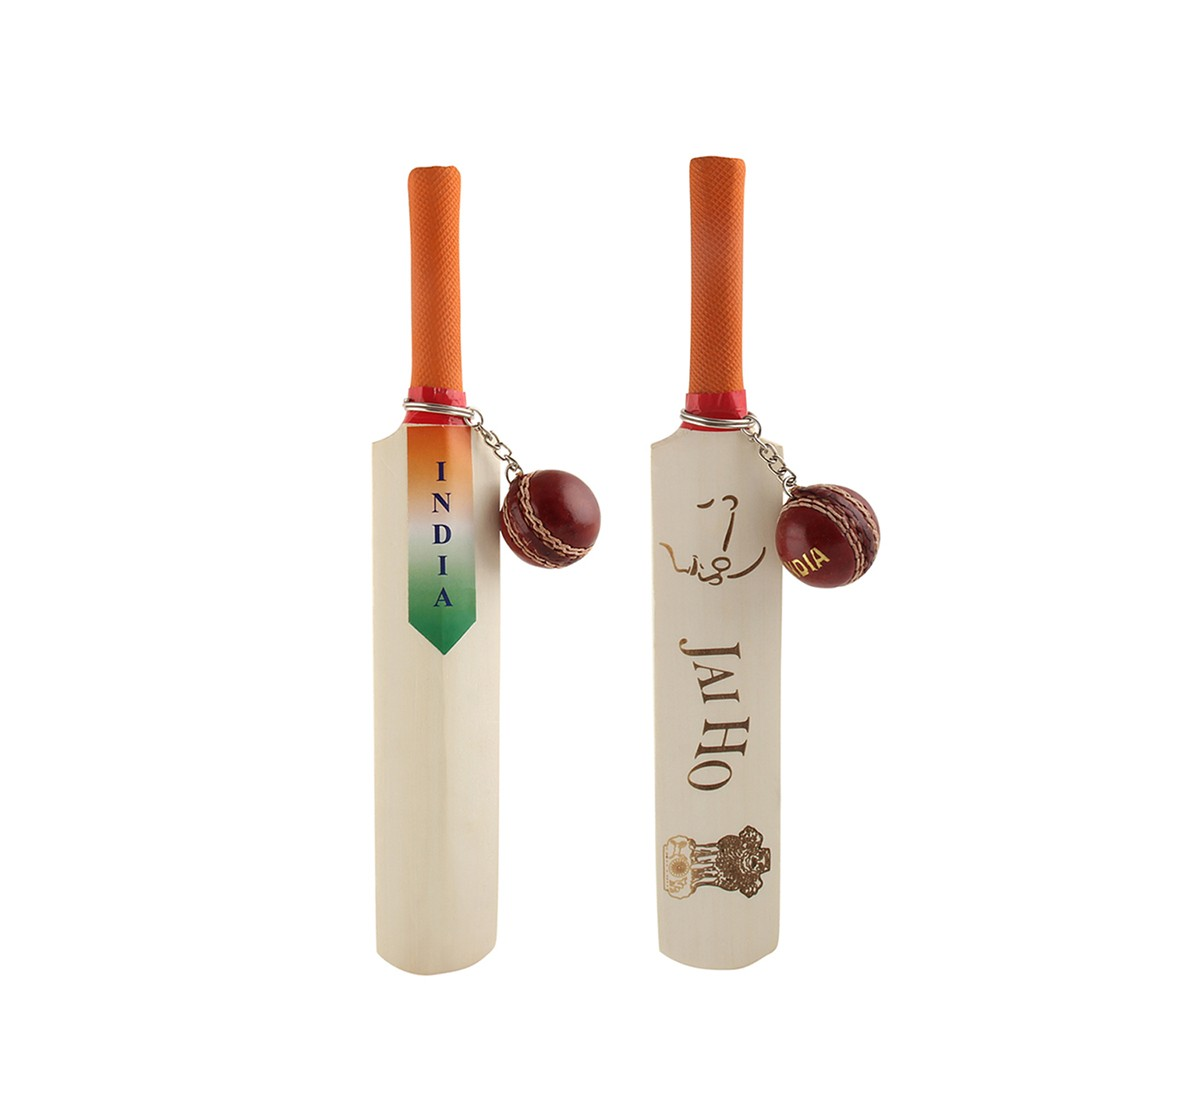 Vibrant India VI Bat & Ball Engraved Wooden Toys for Kids age 3Y+